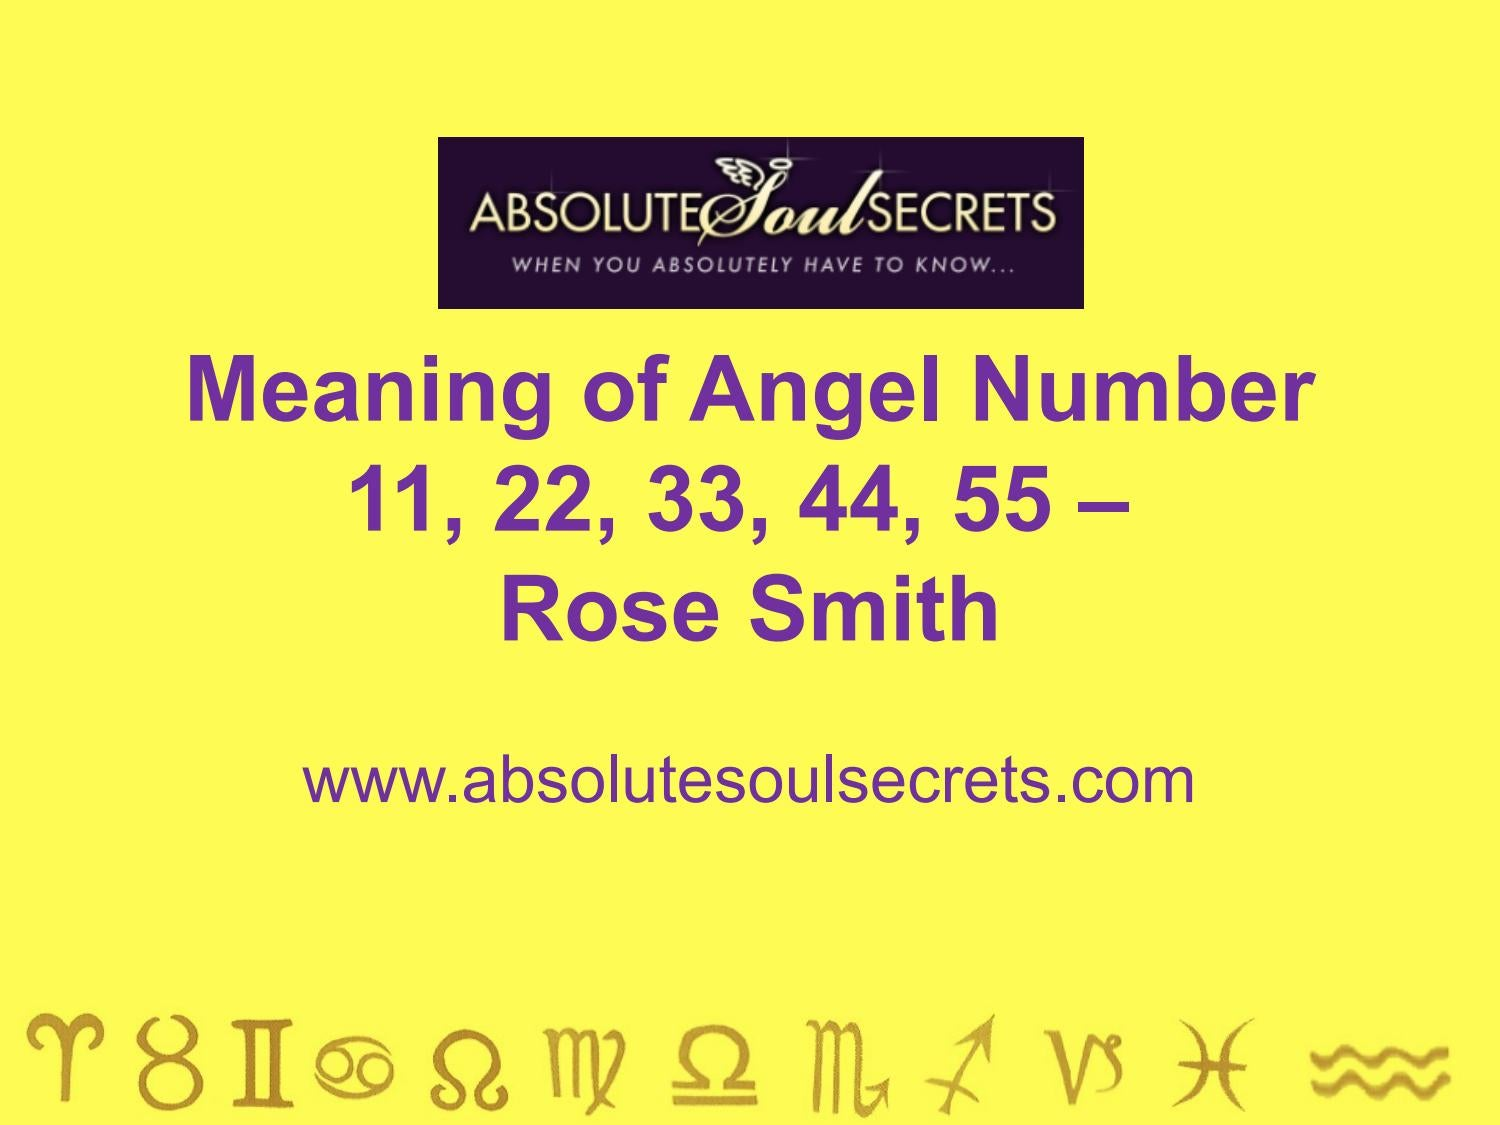 Meaning of Angel Number 11, 22, 33, 44, 55 - www absolutesoulsecrets